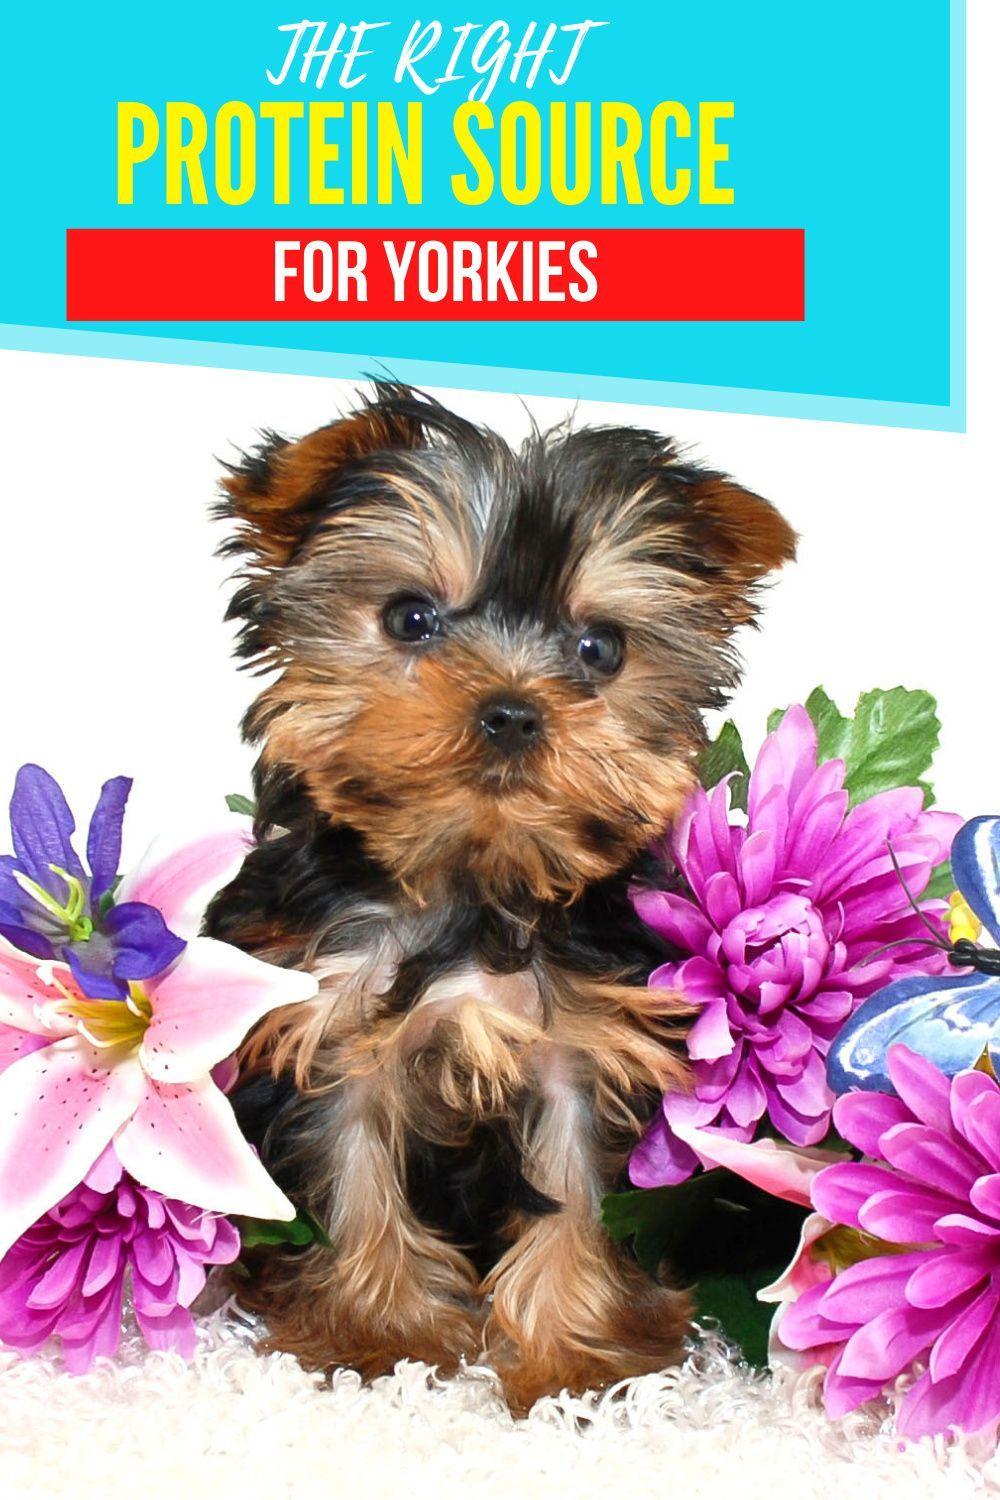 The Right Protein Source For Yorkies Yorkie Best Dog Food Wet Dog Food